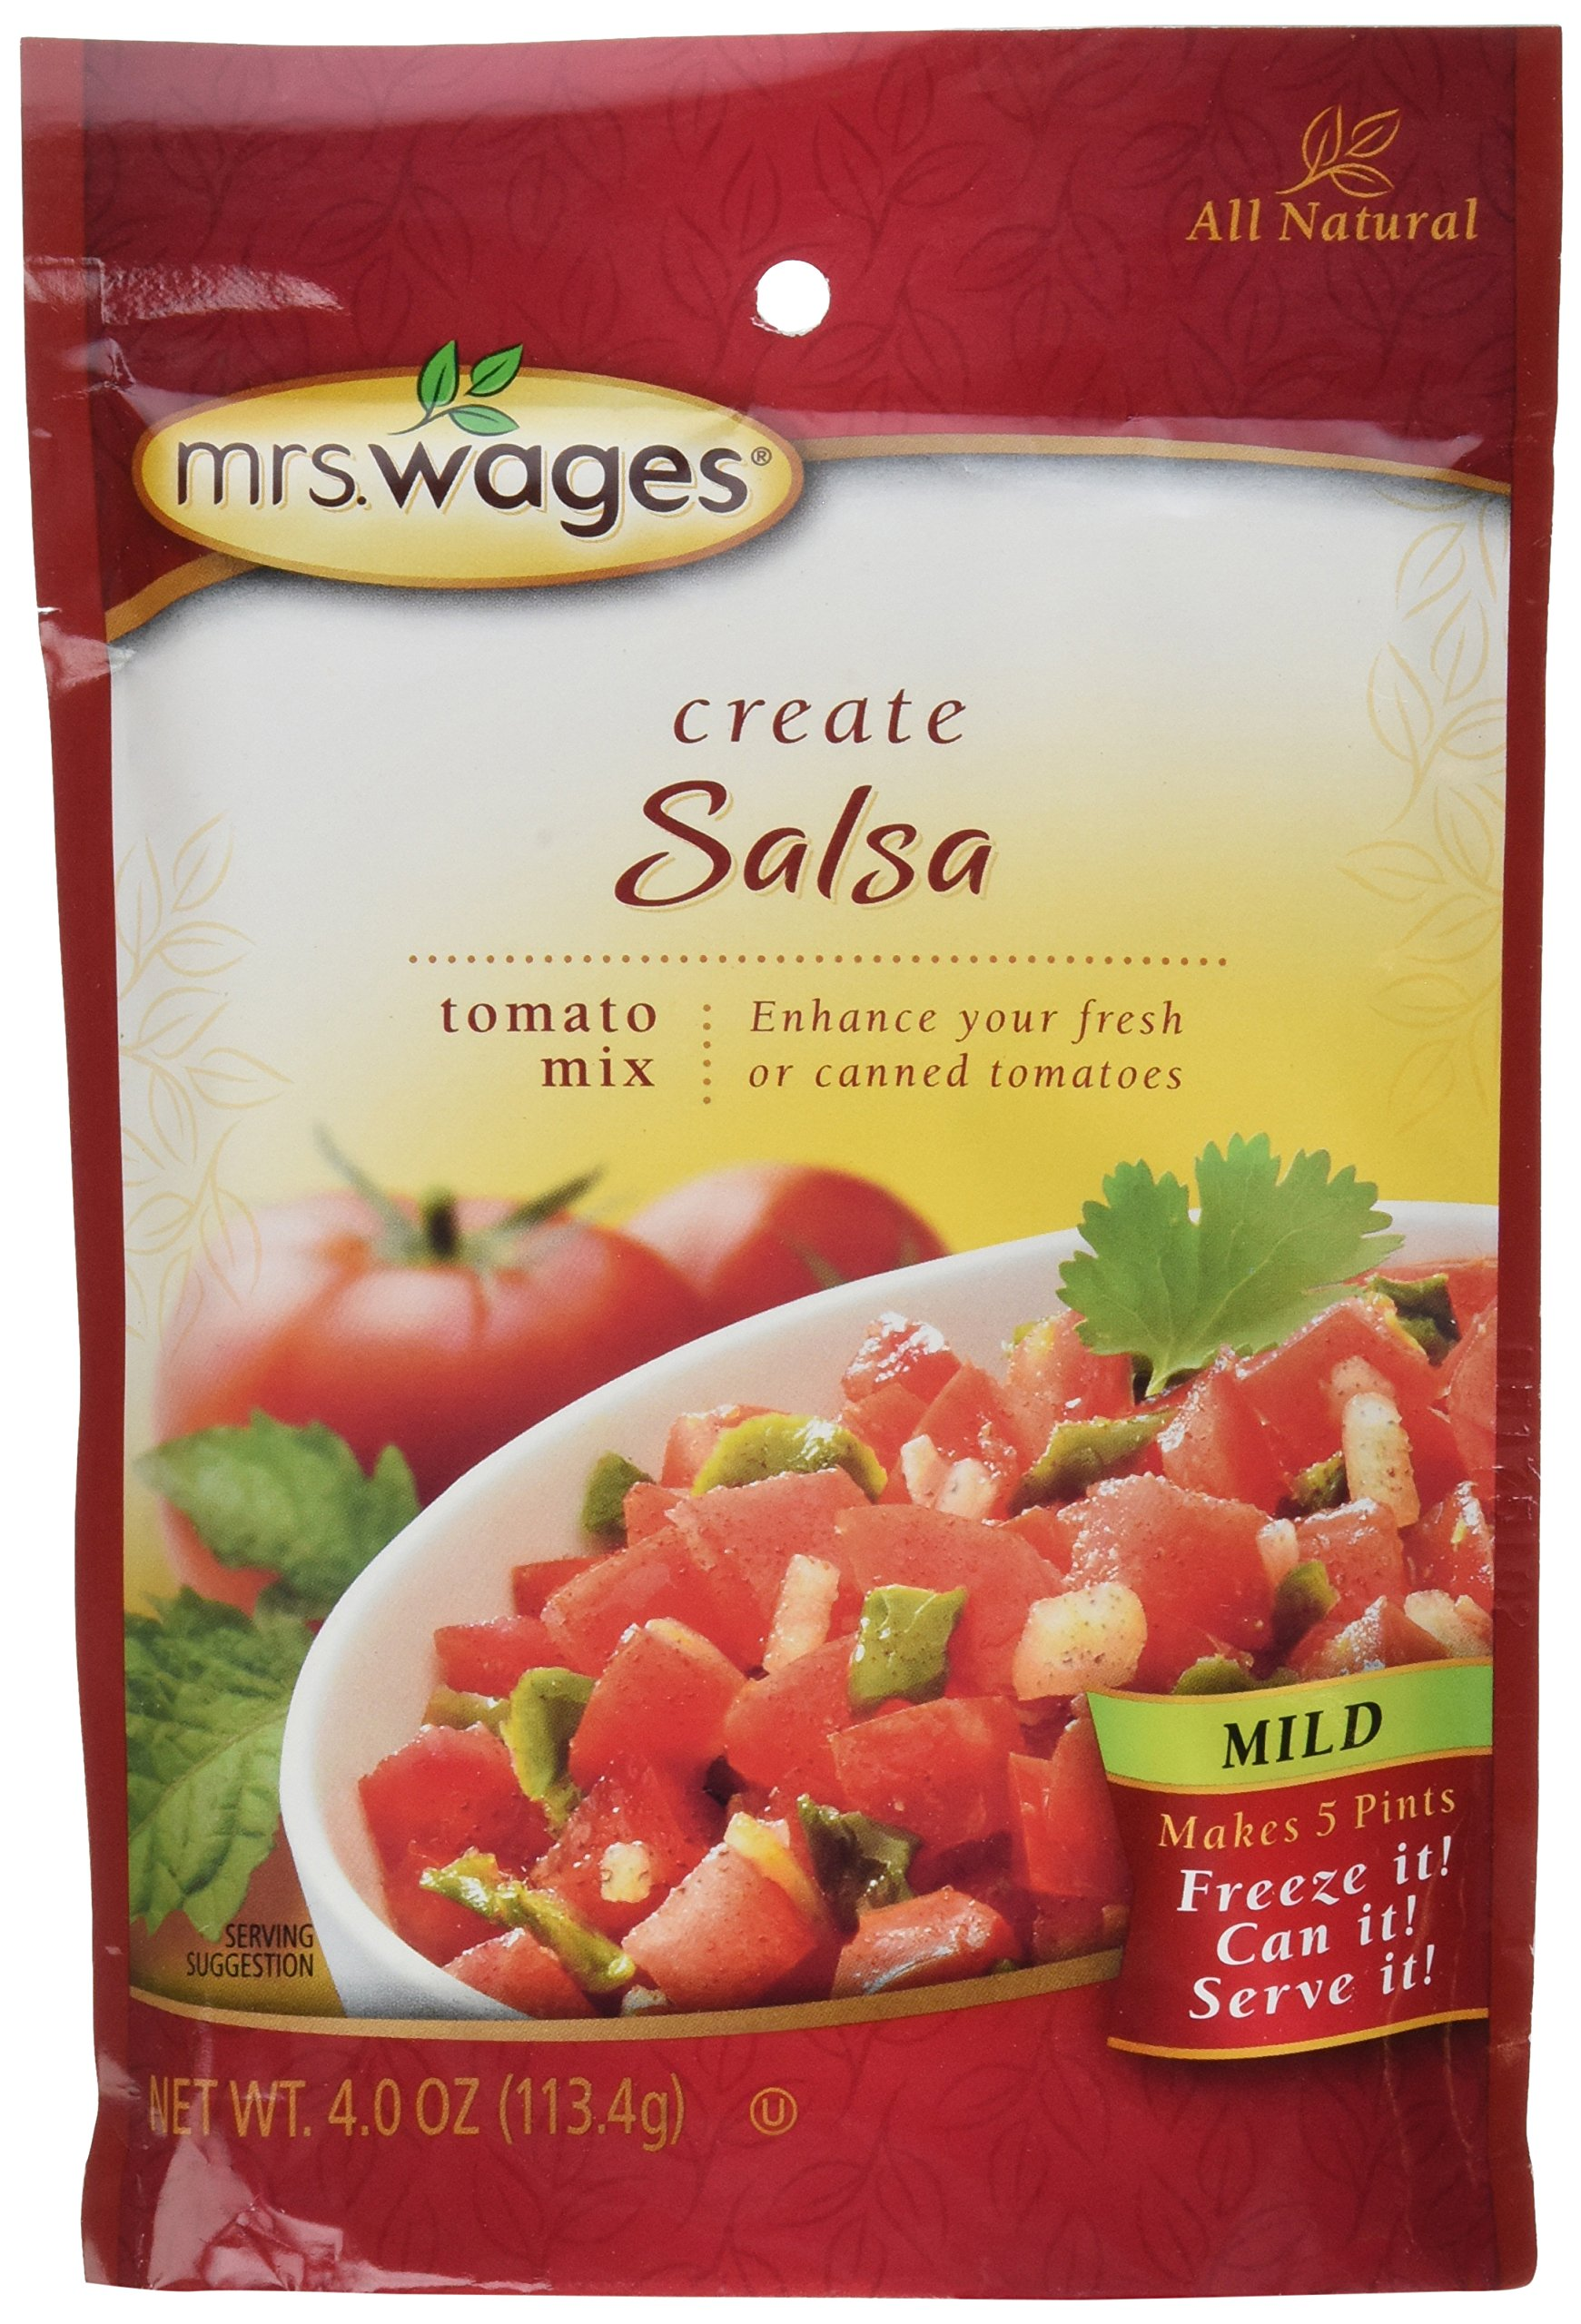 Mrs Wages Mild Salsa Mix-6 packages, 4oz each by Mrs. Wages